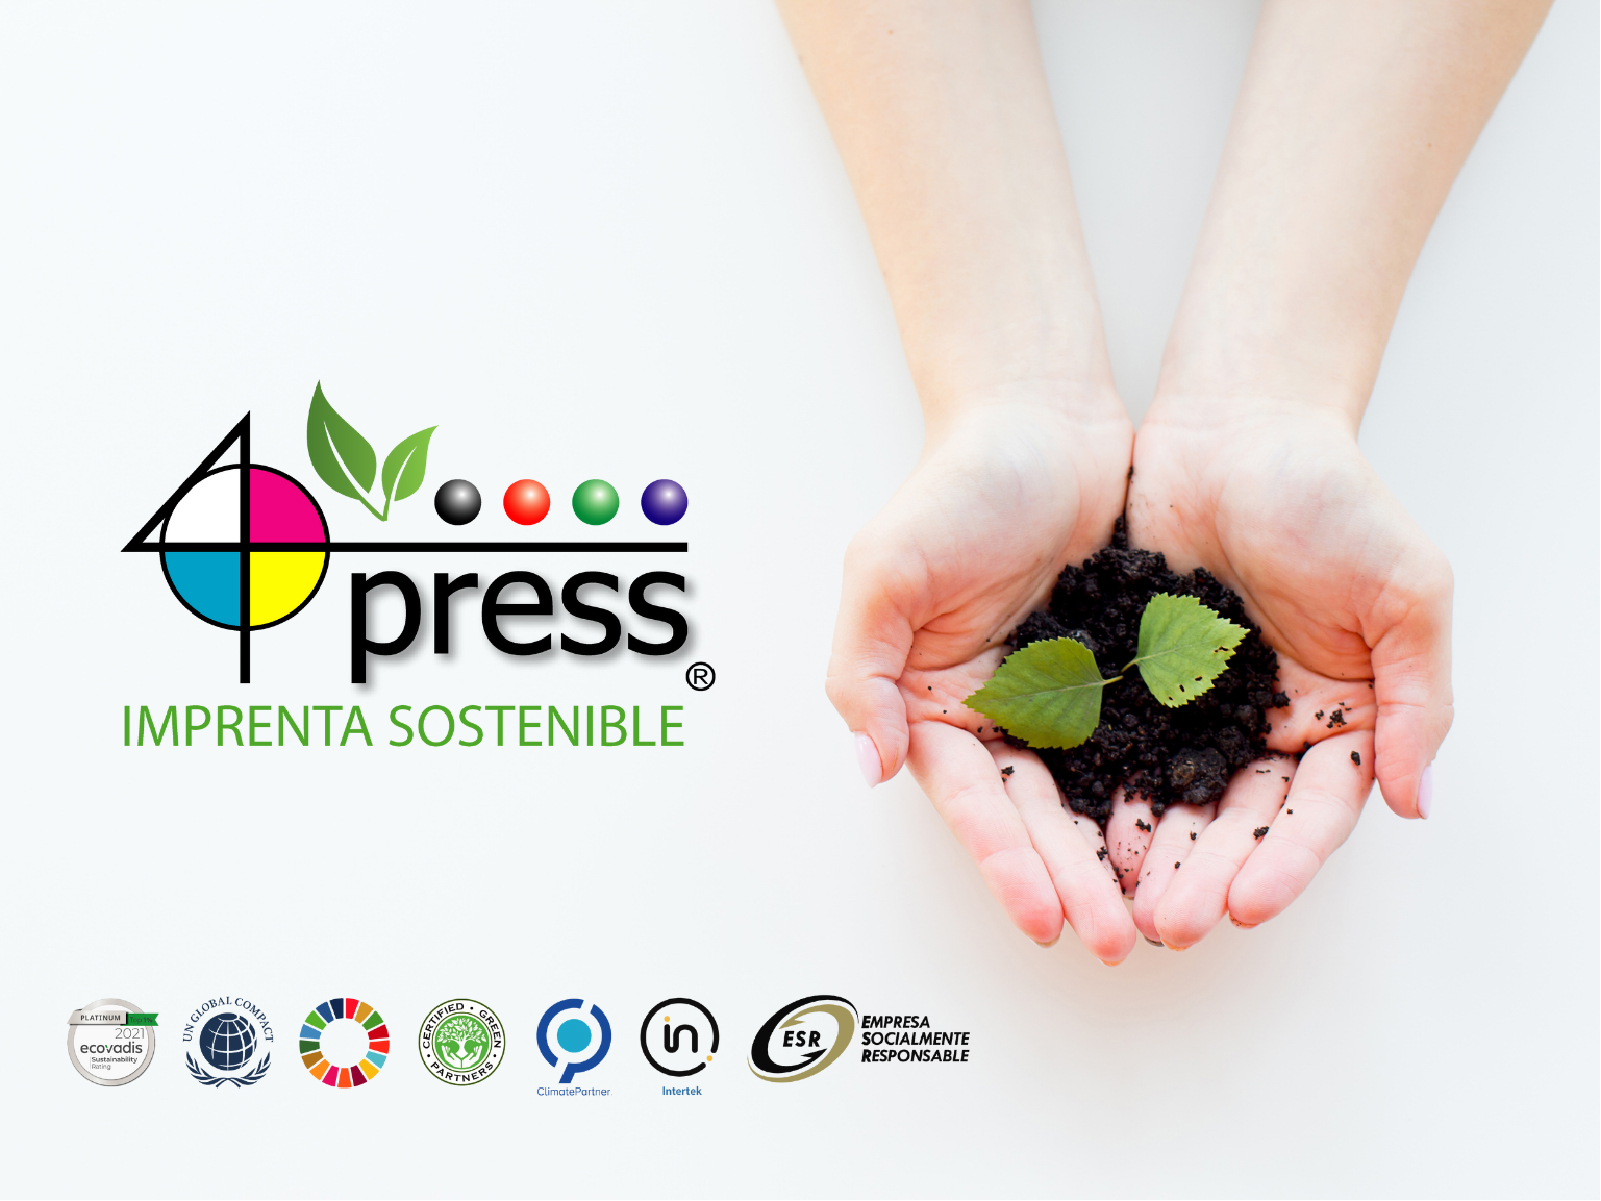 Productos Covid-19 Caretas, Mamparas, Viniles, Cubrebocas, Señalizaciones - 4Press